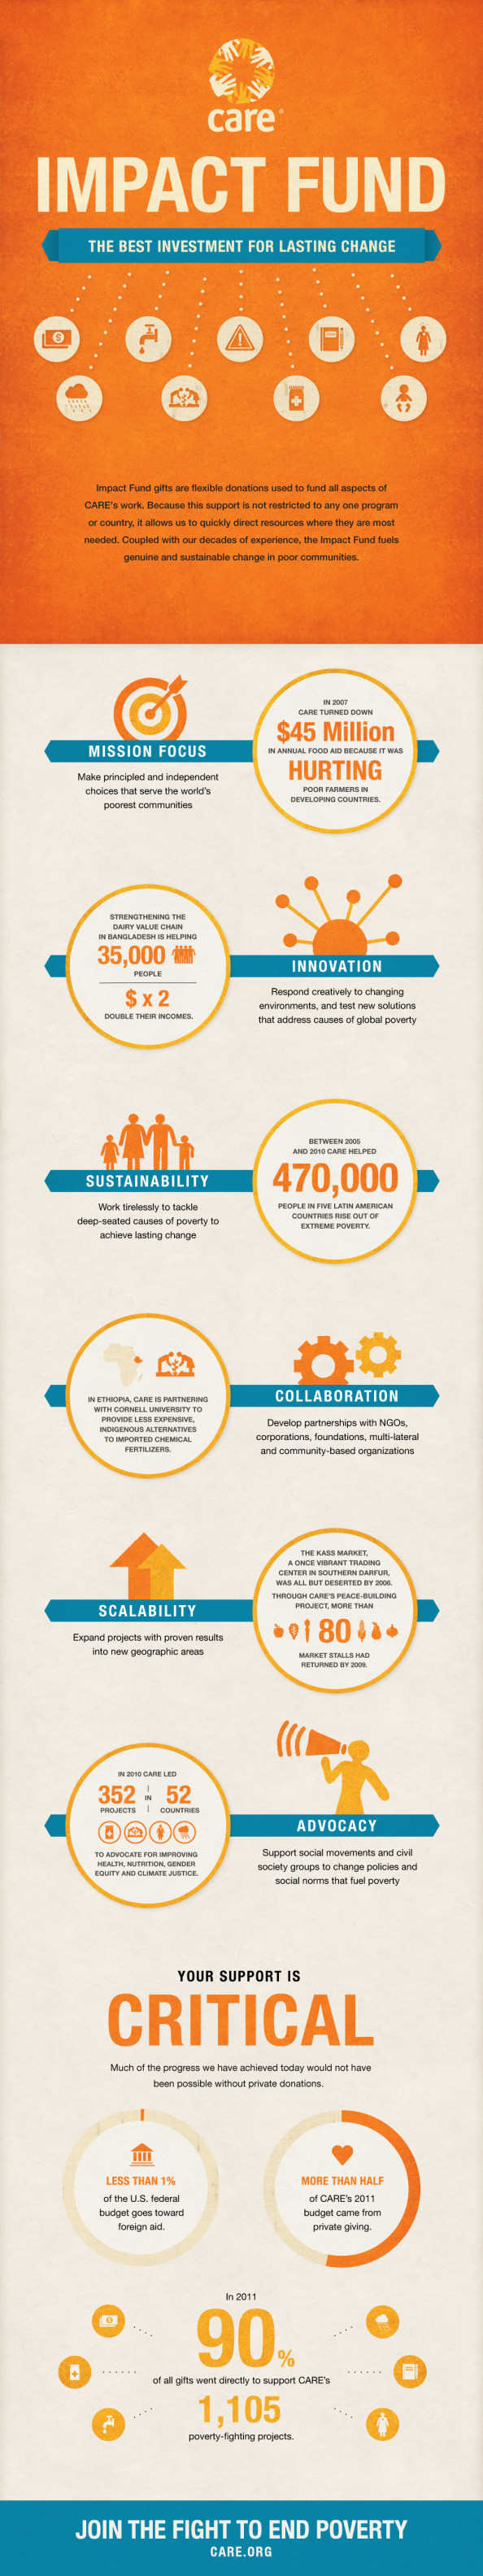 CARE: Impact Fund Infographic